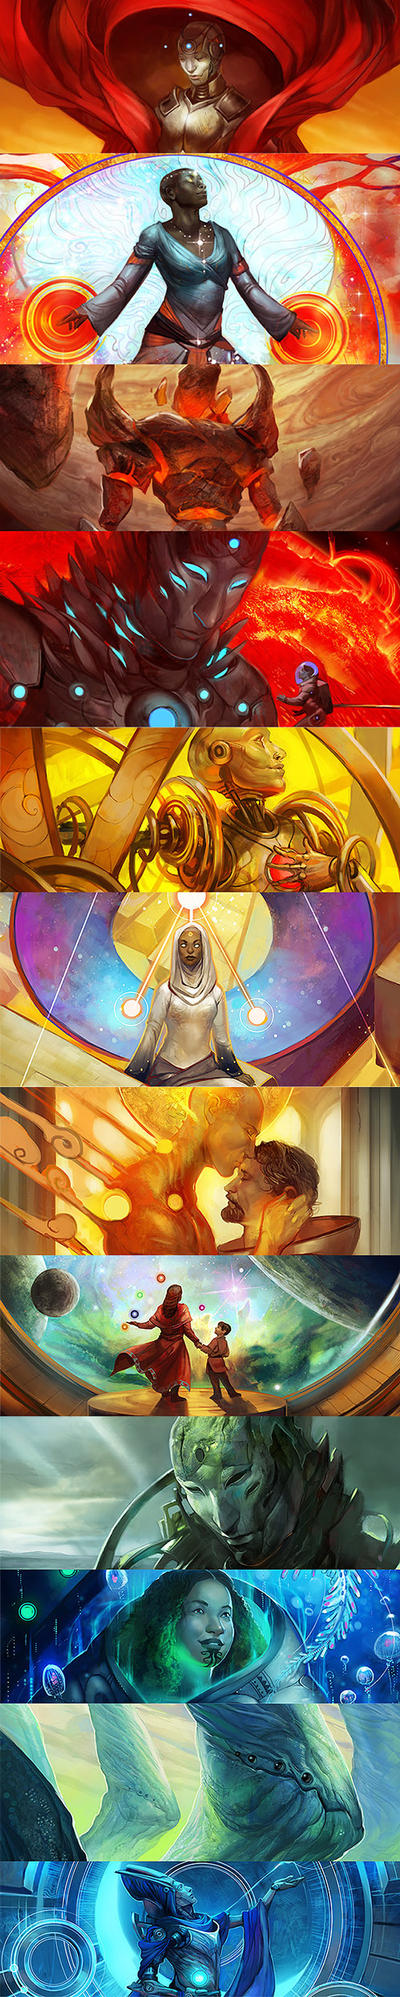 Preview for Imagined Realms Book 2: Earth and Sky by juliedillon